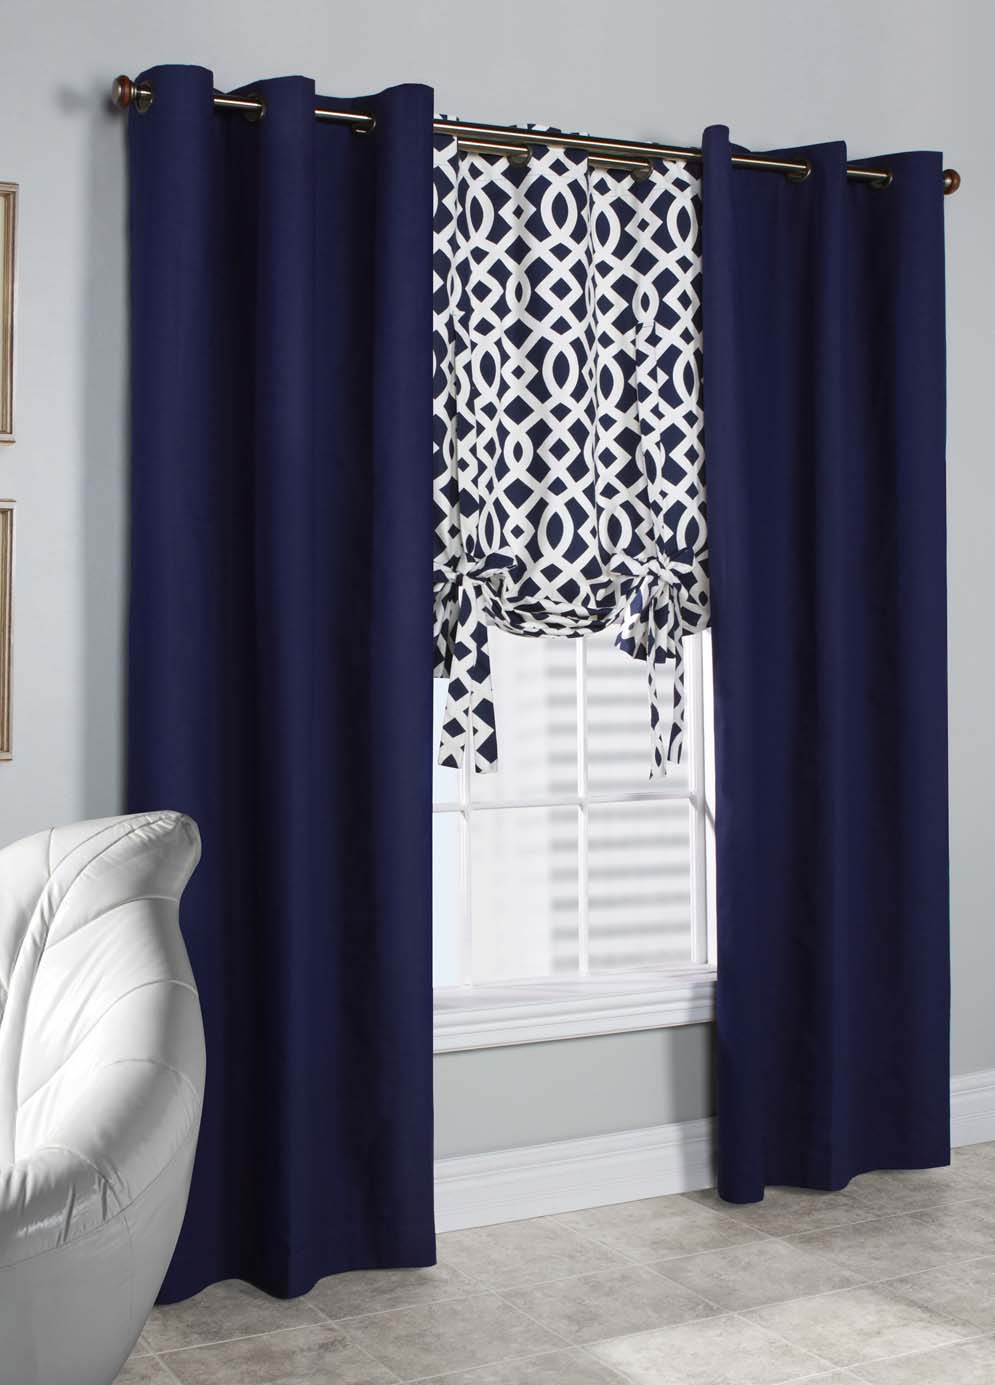 Insulate Curtains | Thermal Insulated Curtains | Thermal Insulated Drapes